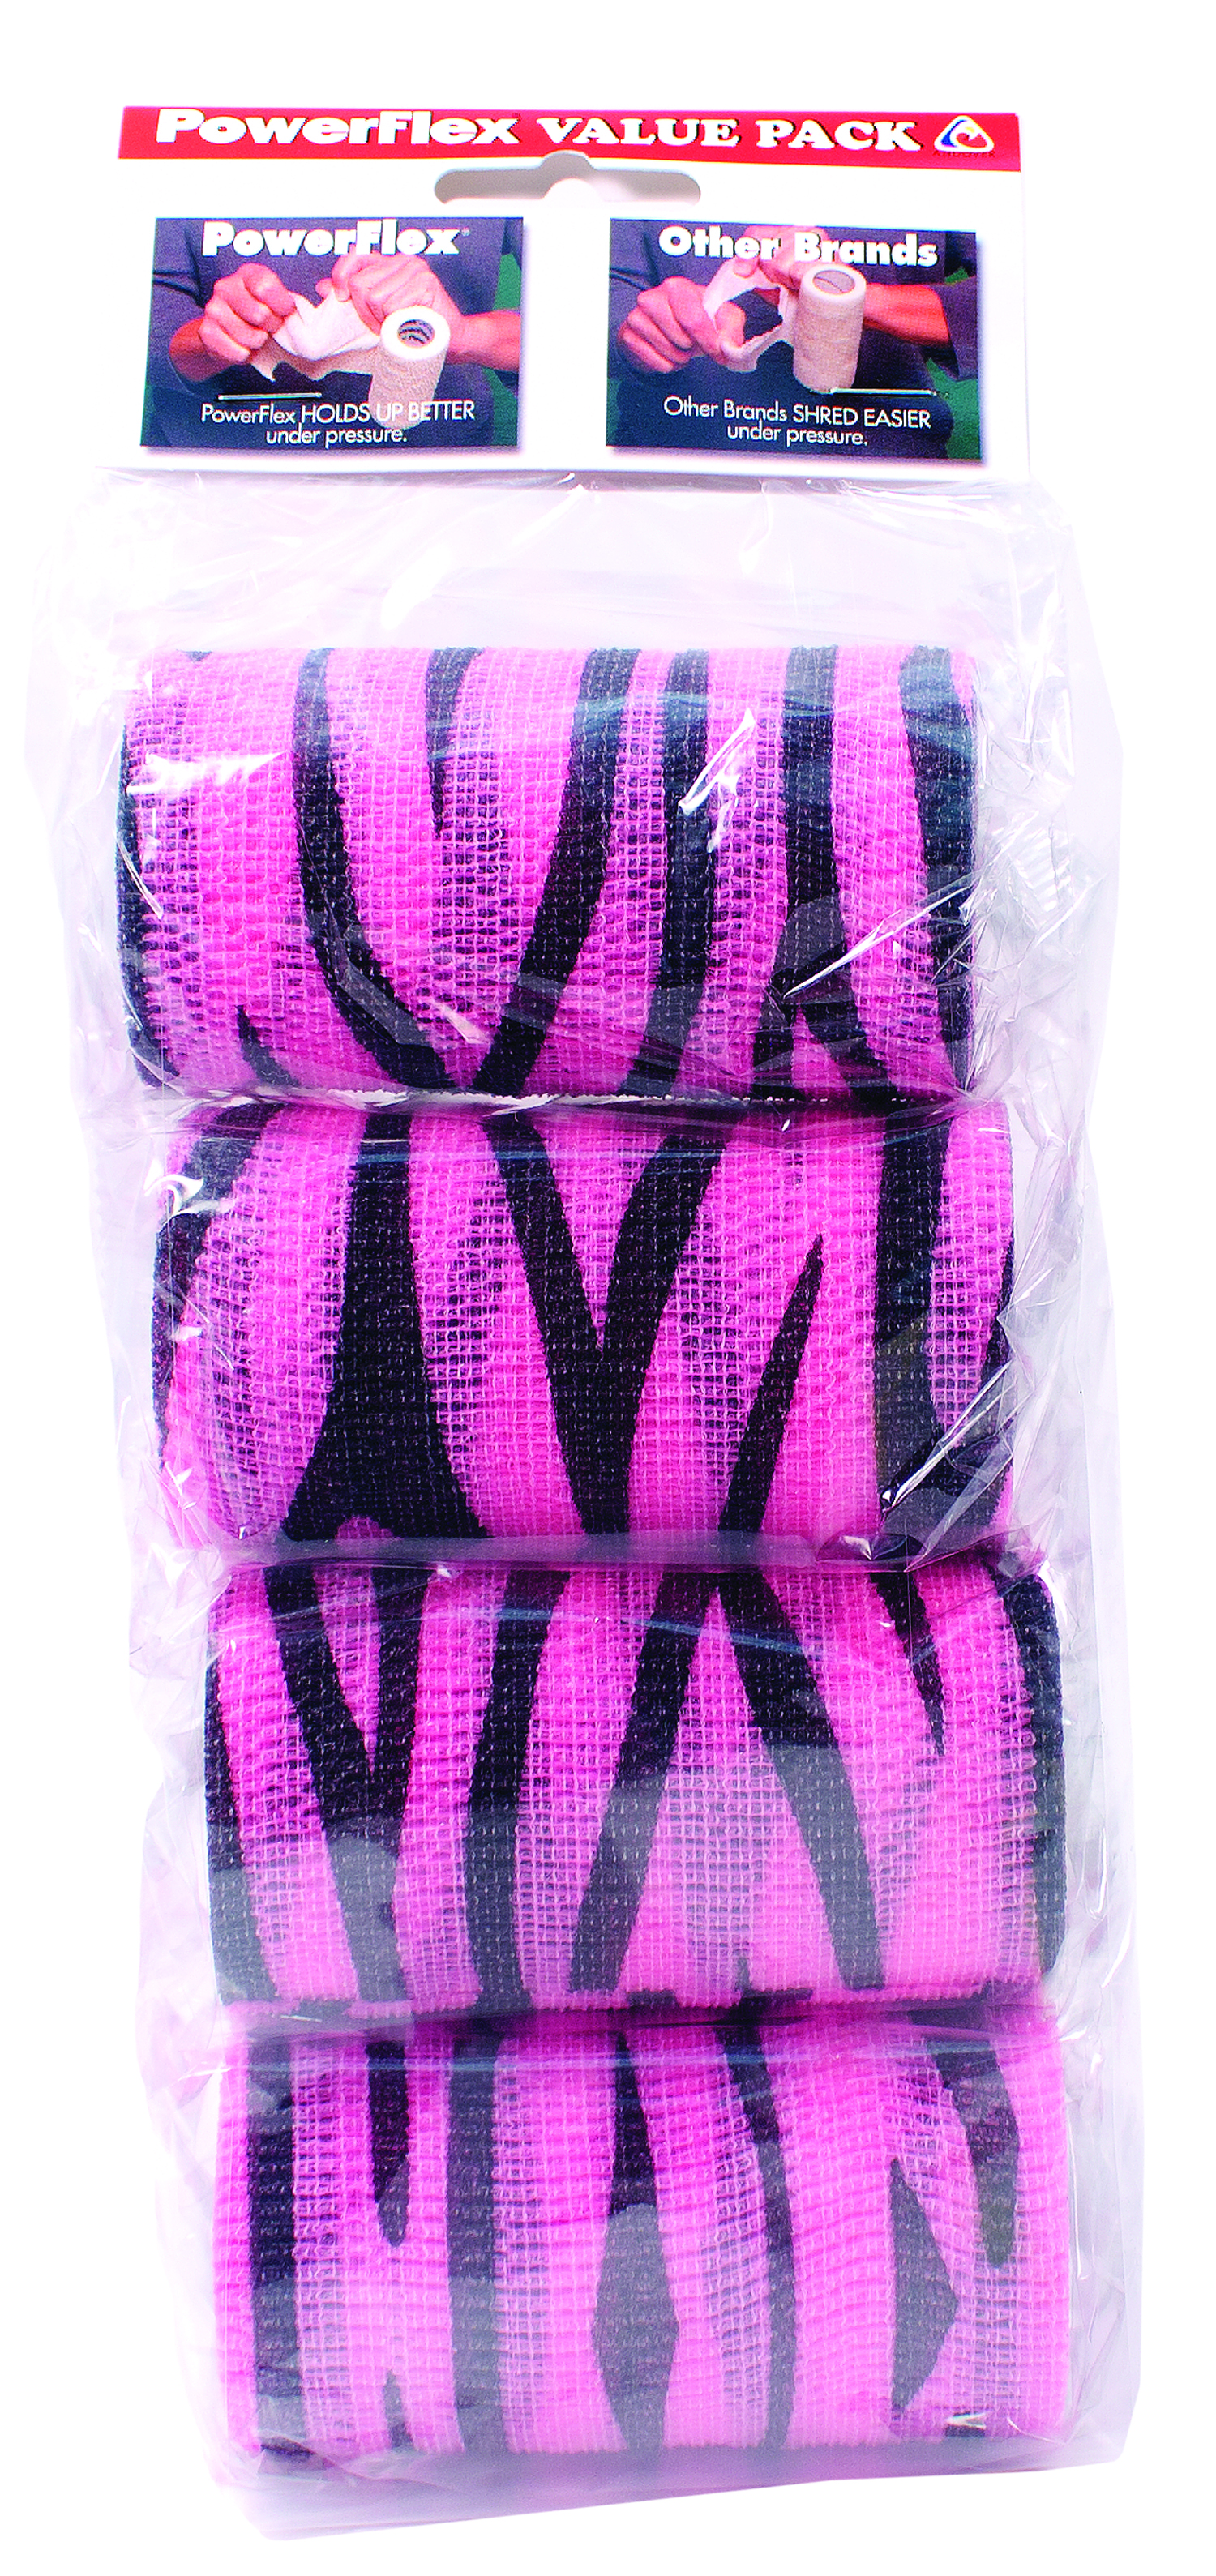 Powerflex Value Pack - Pink Zebra